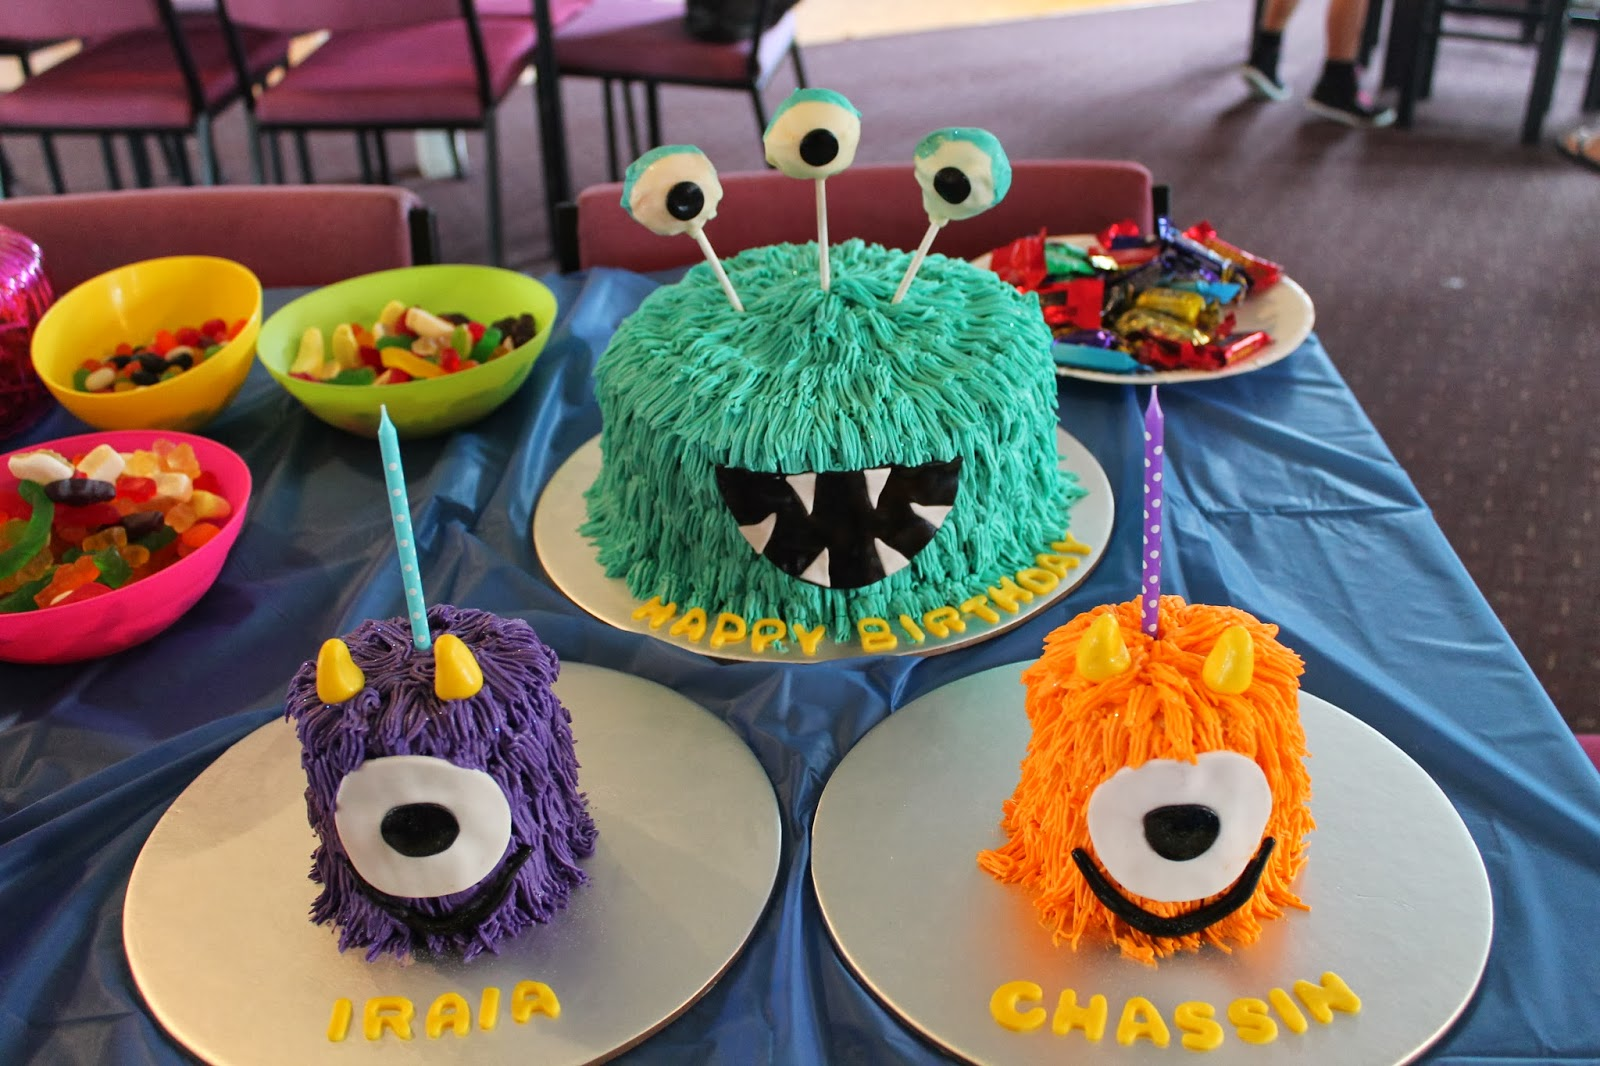 Karas Cakes Monster Cake and Smash Cakes